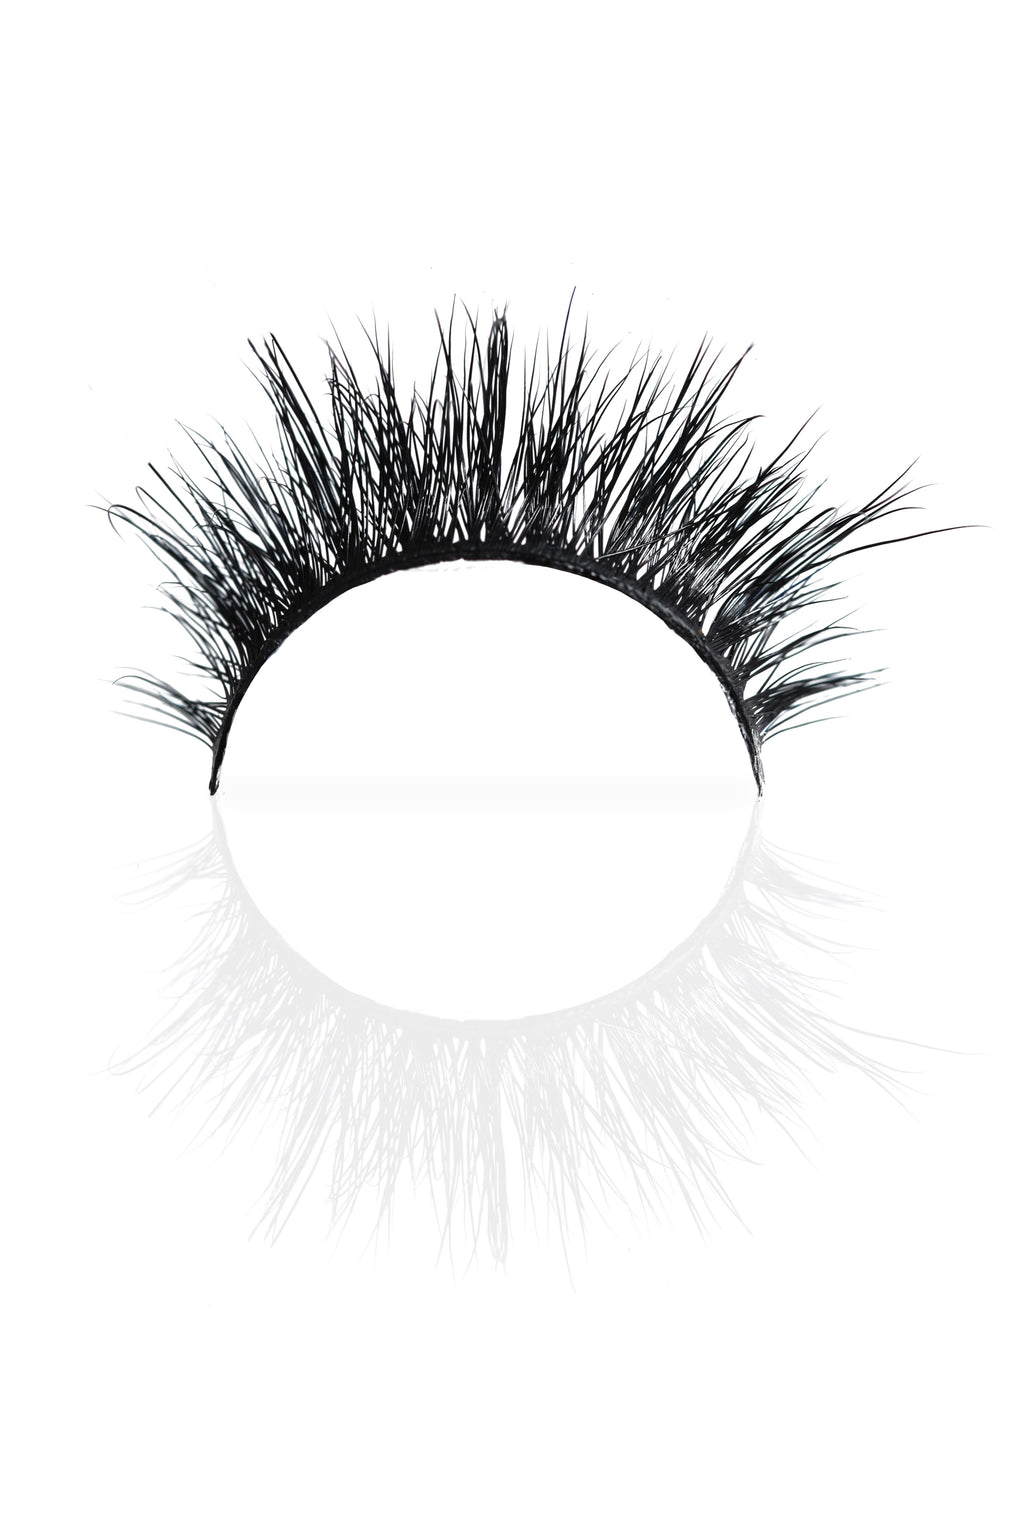 GB13 Luxury Mink Eyelashes